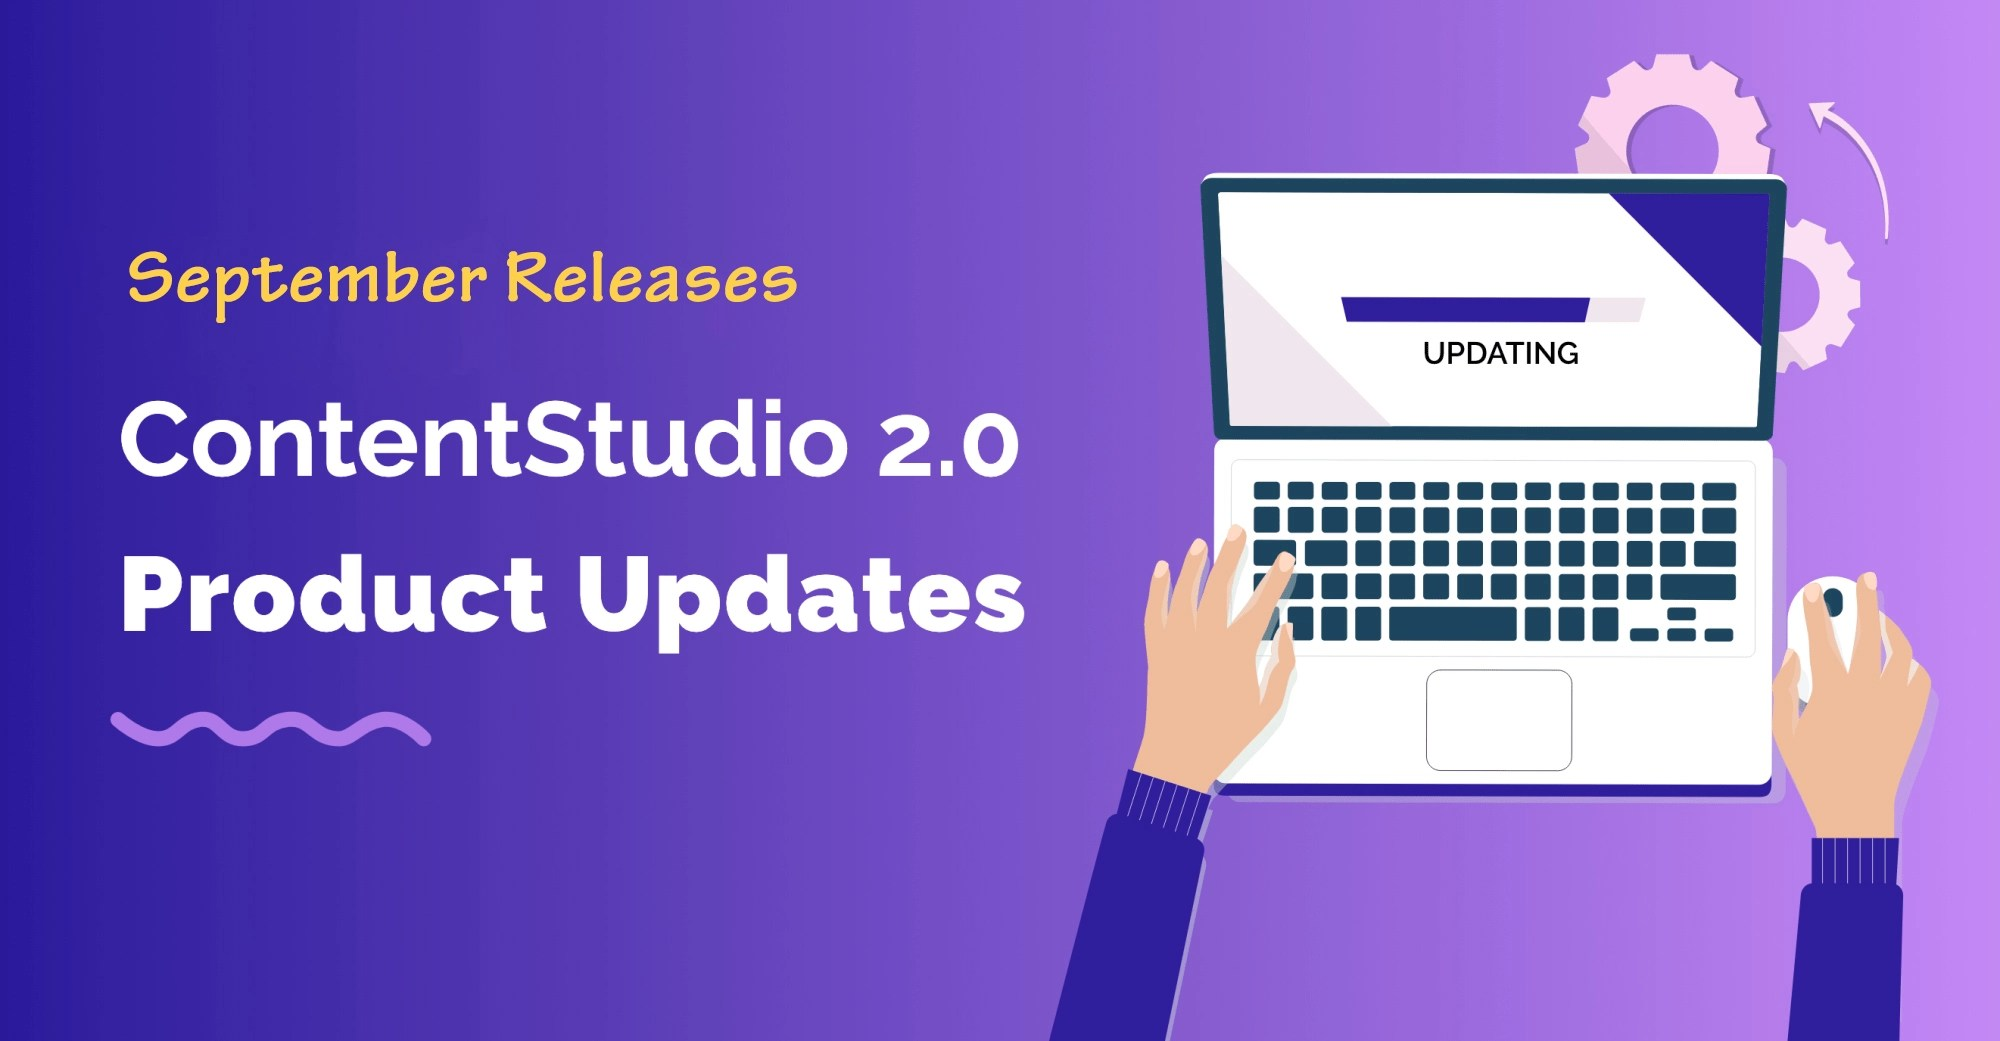 September Product Update - ContentStudio